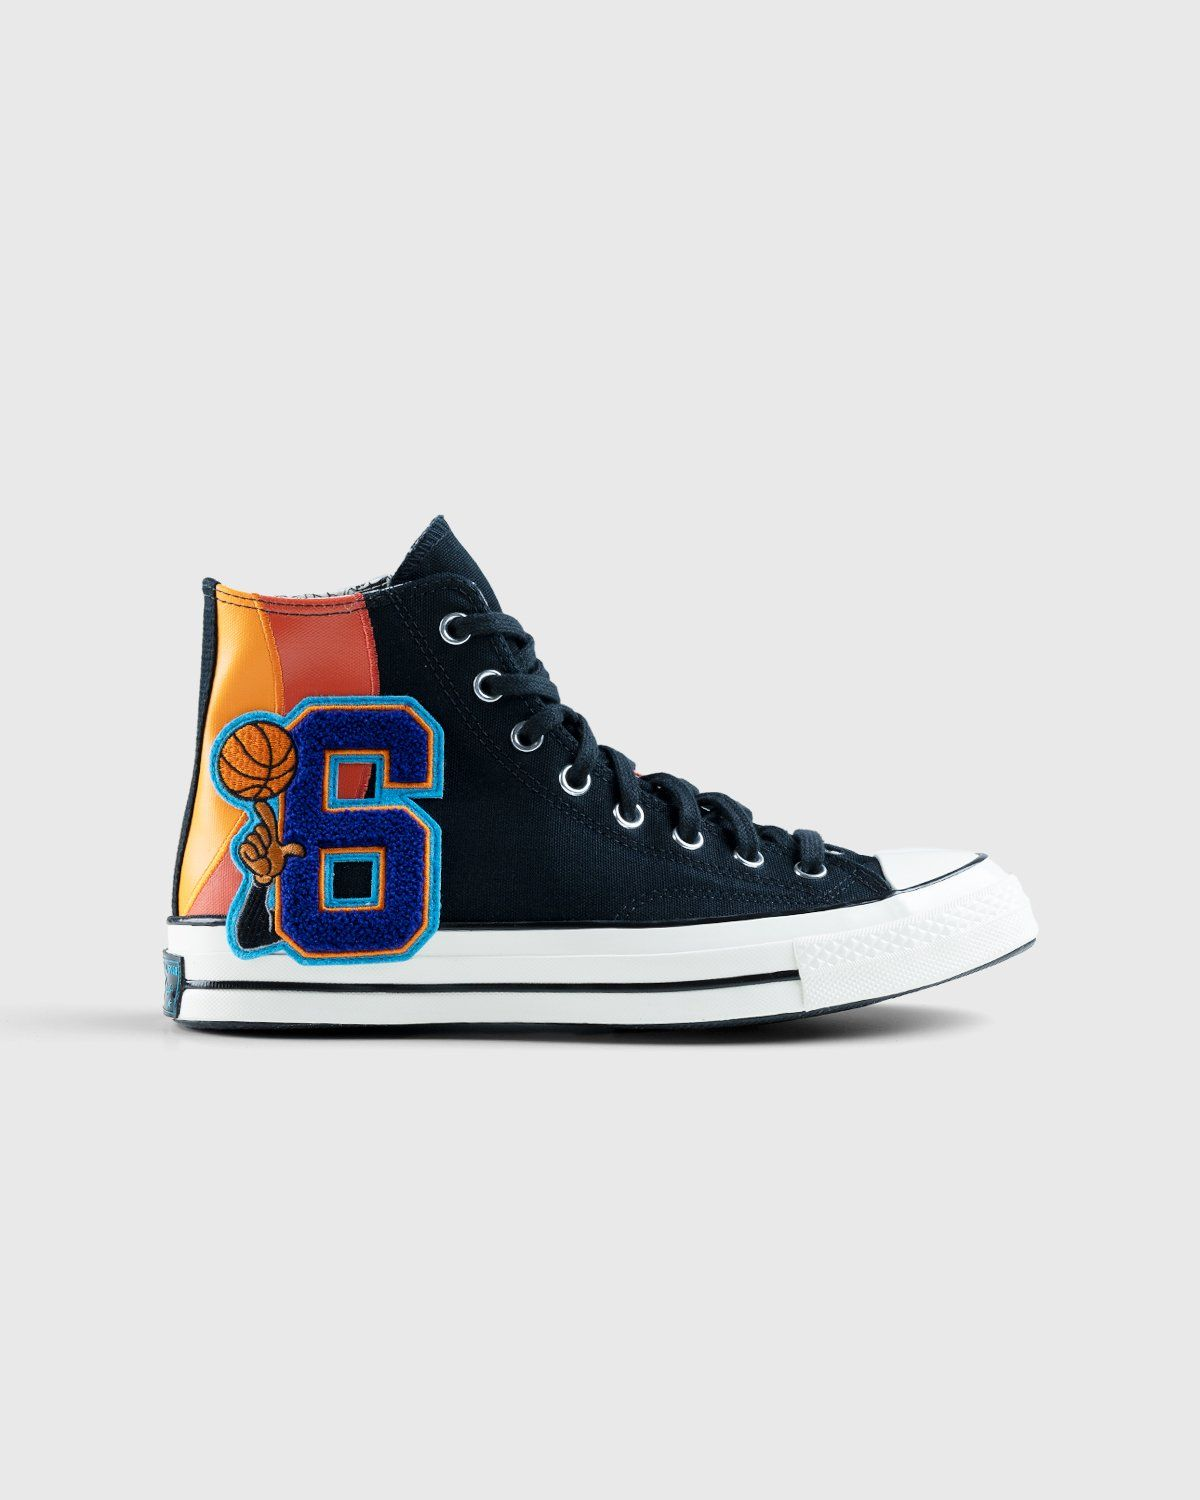 Converse x Space Jam: A New Legacy – Chuck Taylor 70 Multi - Image 1